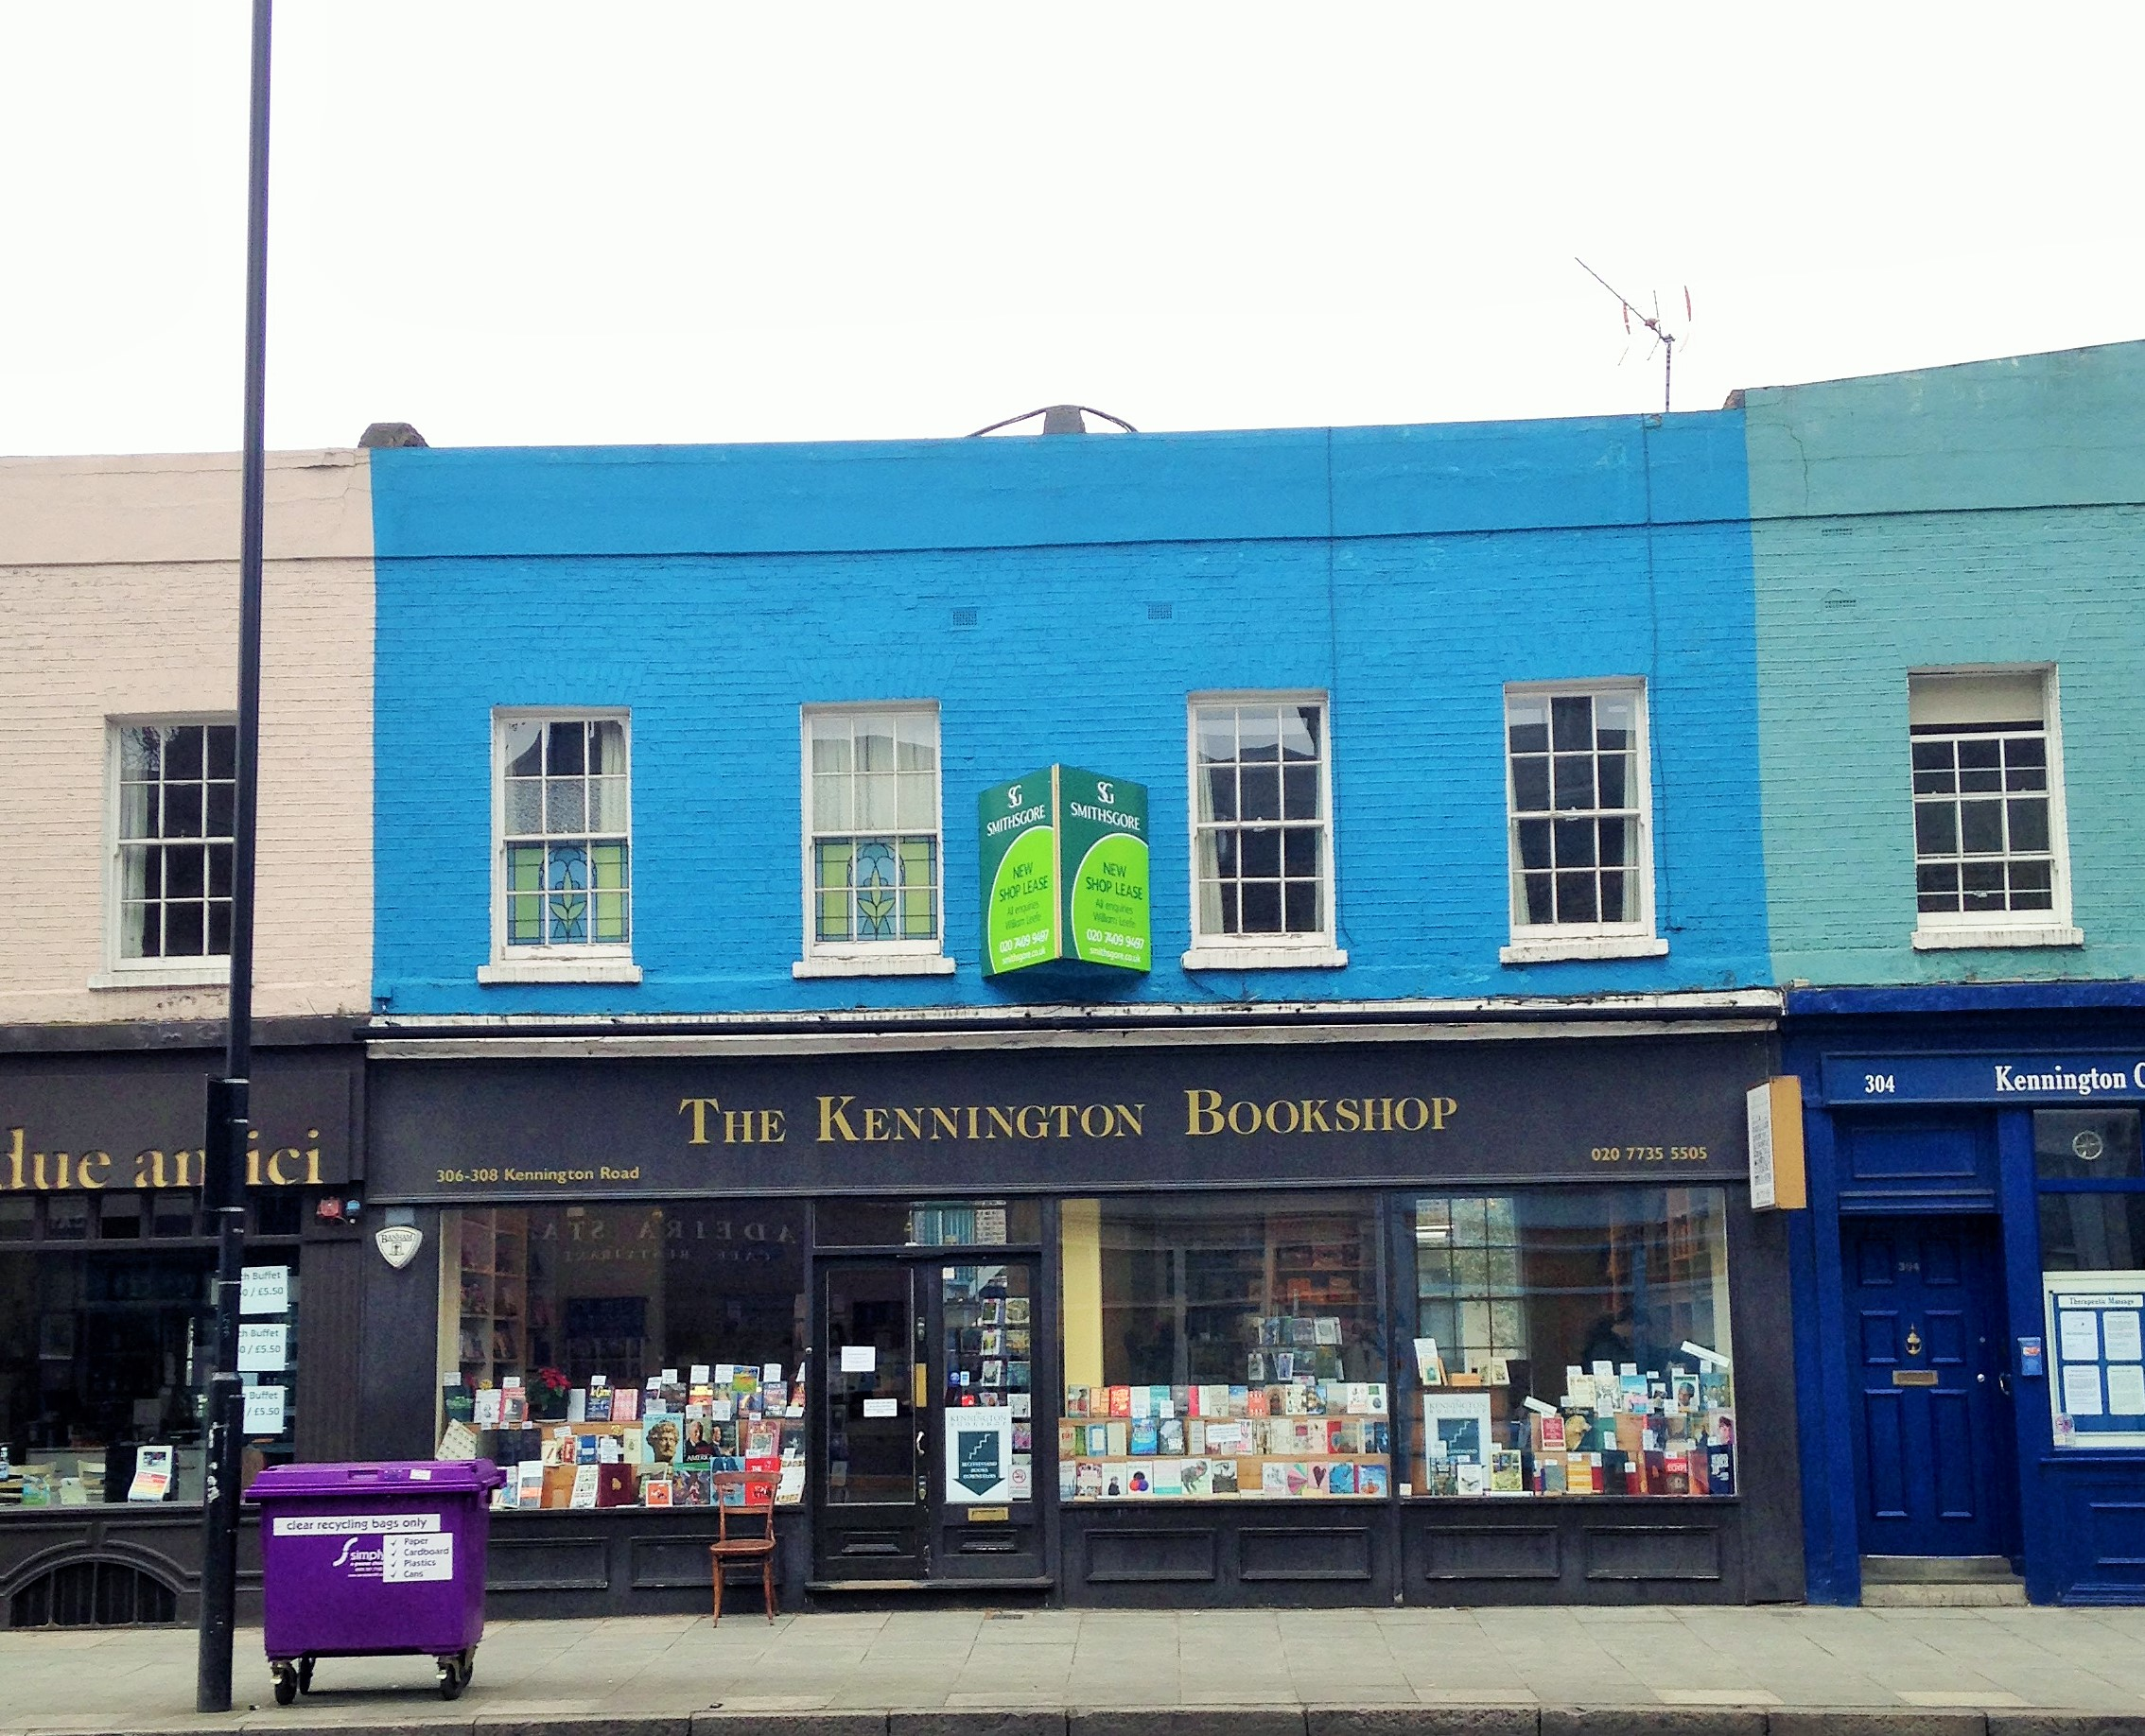 Kennington Bookshop with new shop lease sign up - kenningtonrunoff.com